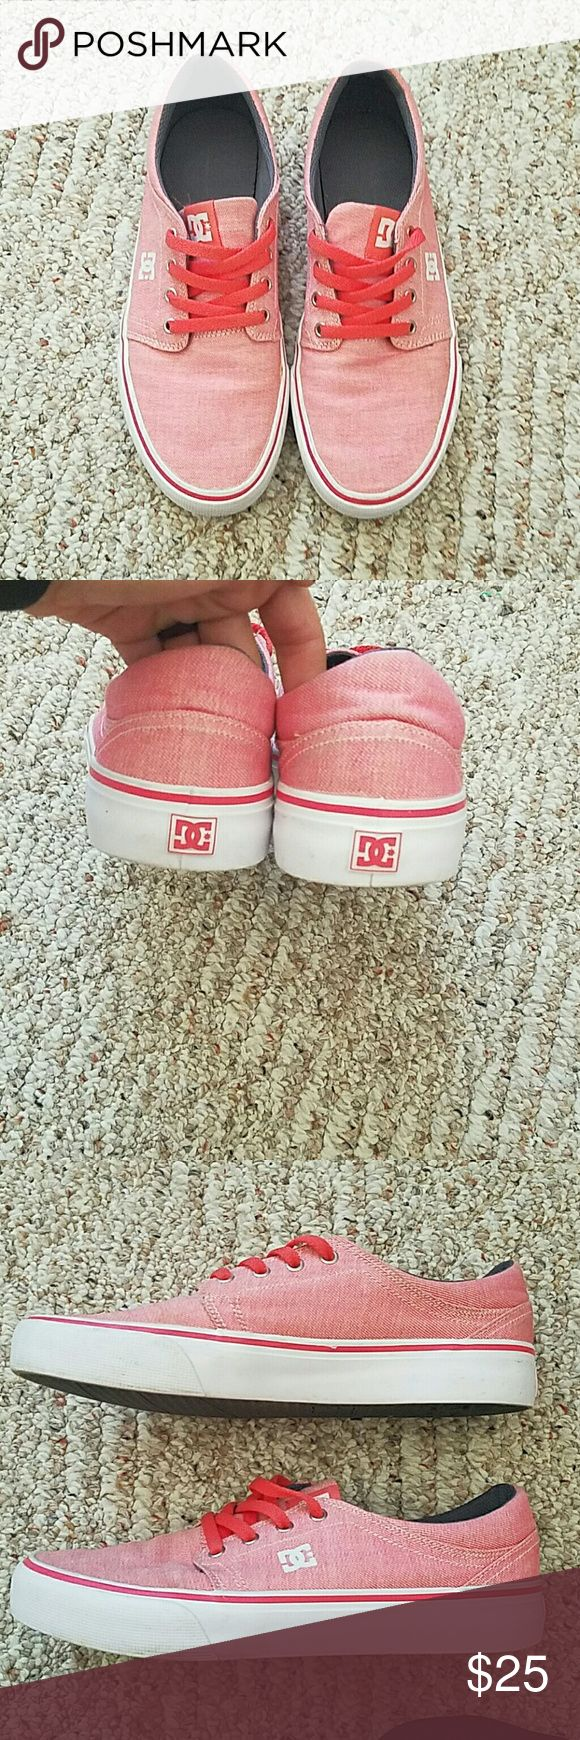 Womens DC skate sneakers size 8 Very comfy and great for a casual outfit or for boarding... whichever suits your fancy! DC Shoes Sneakers